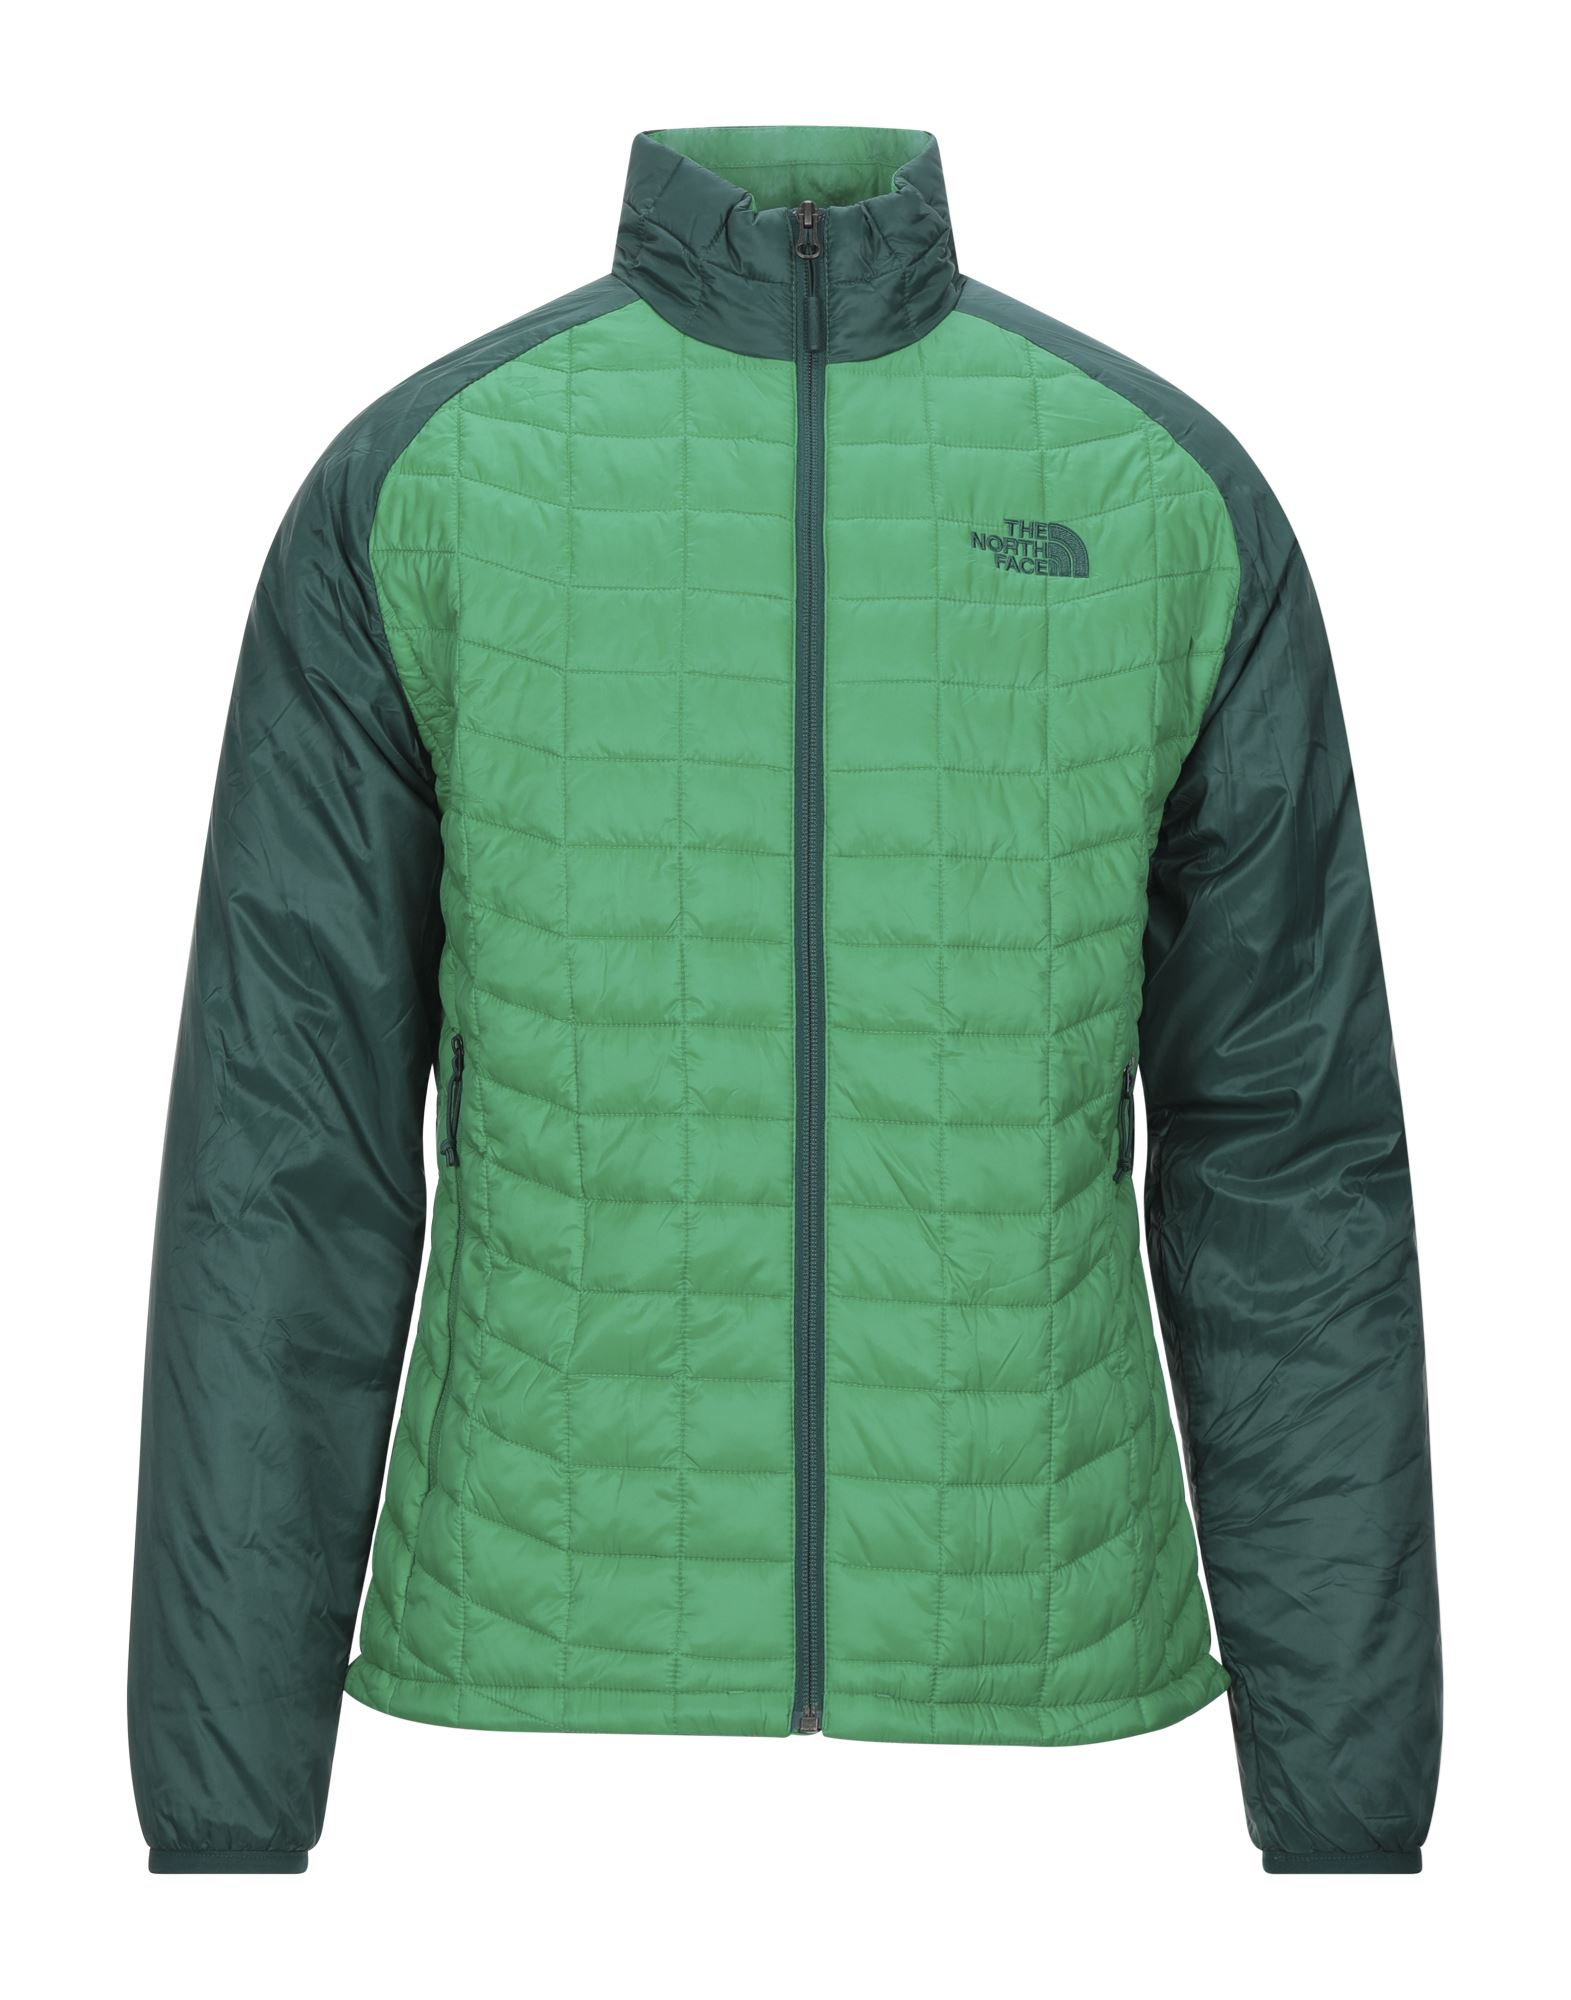 THE NORTH FACE Synthetic Down Jackets - Item 41998869